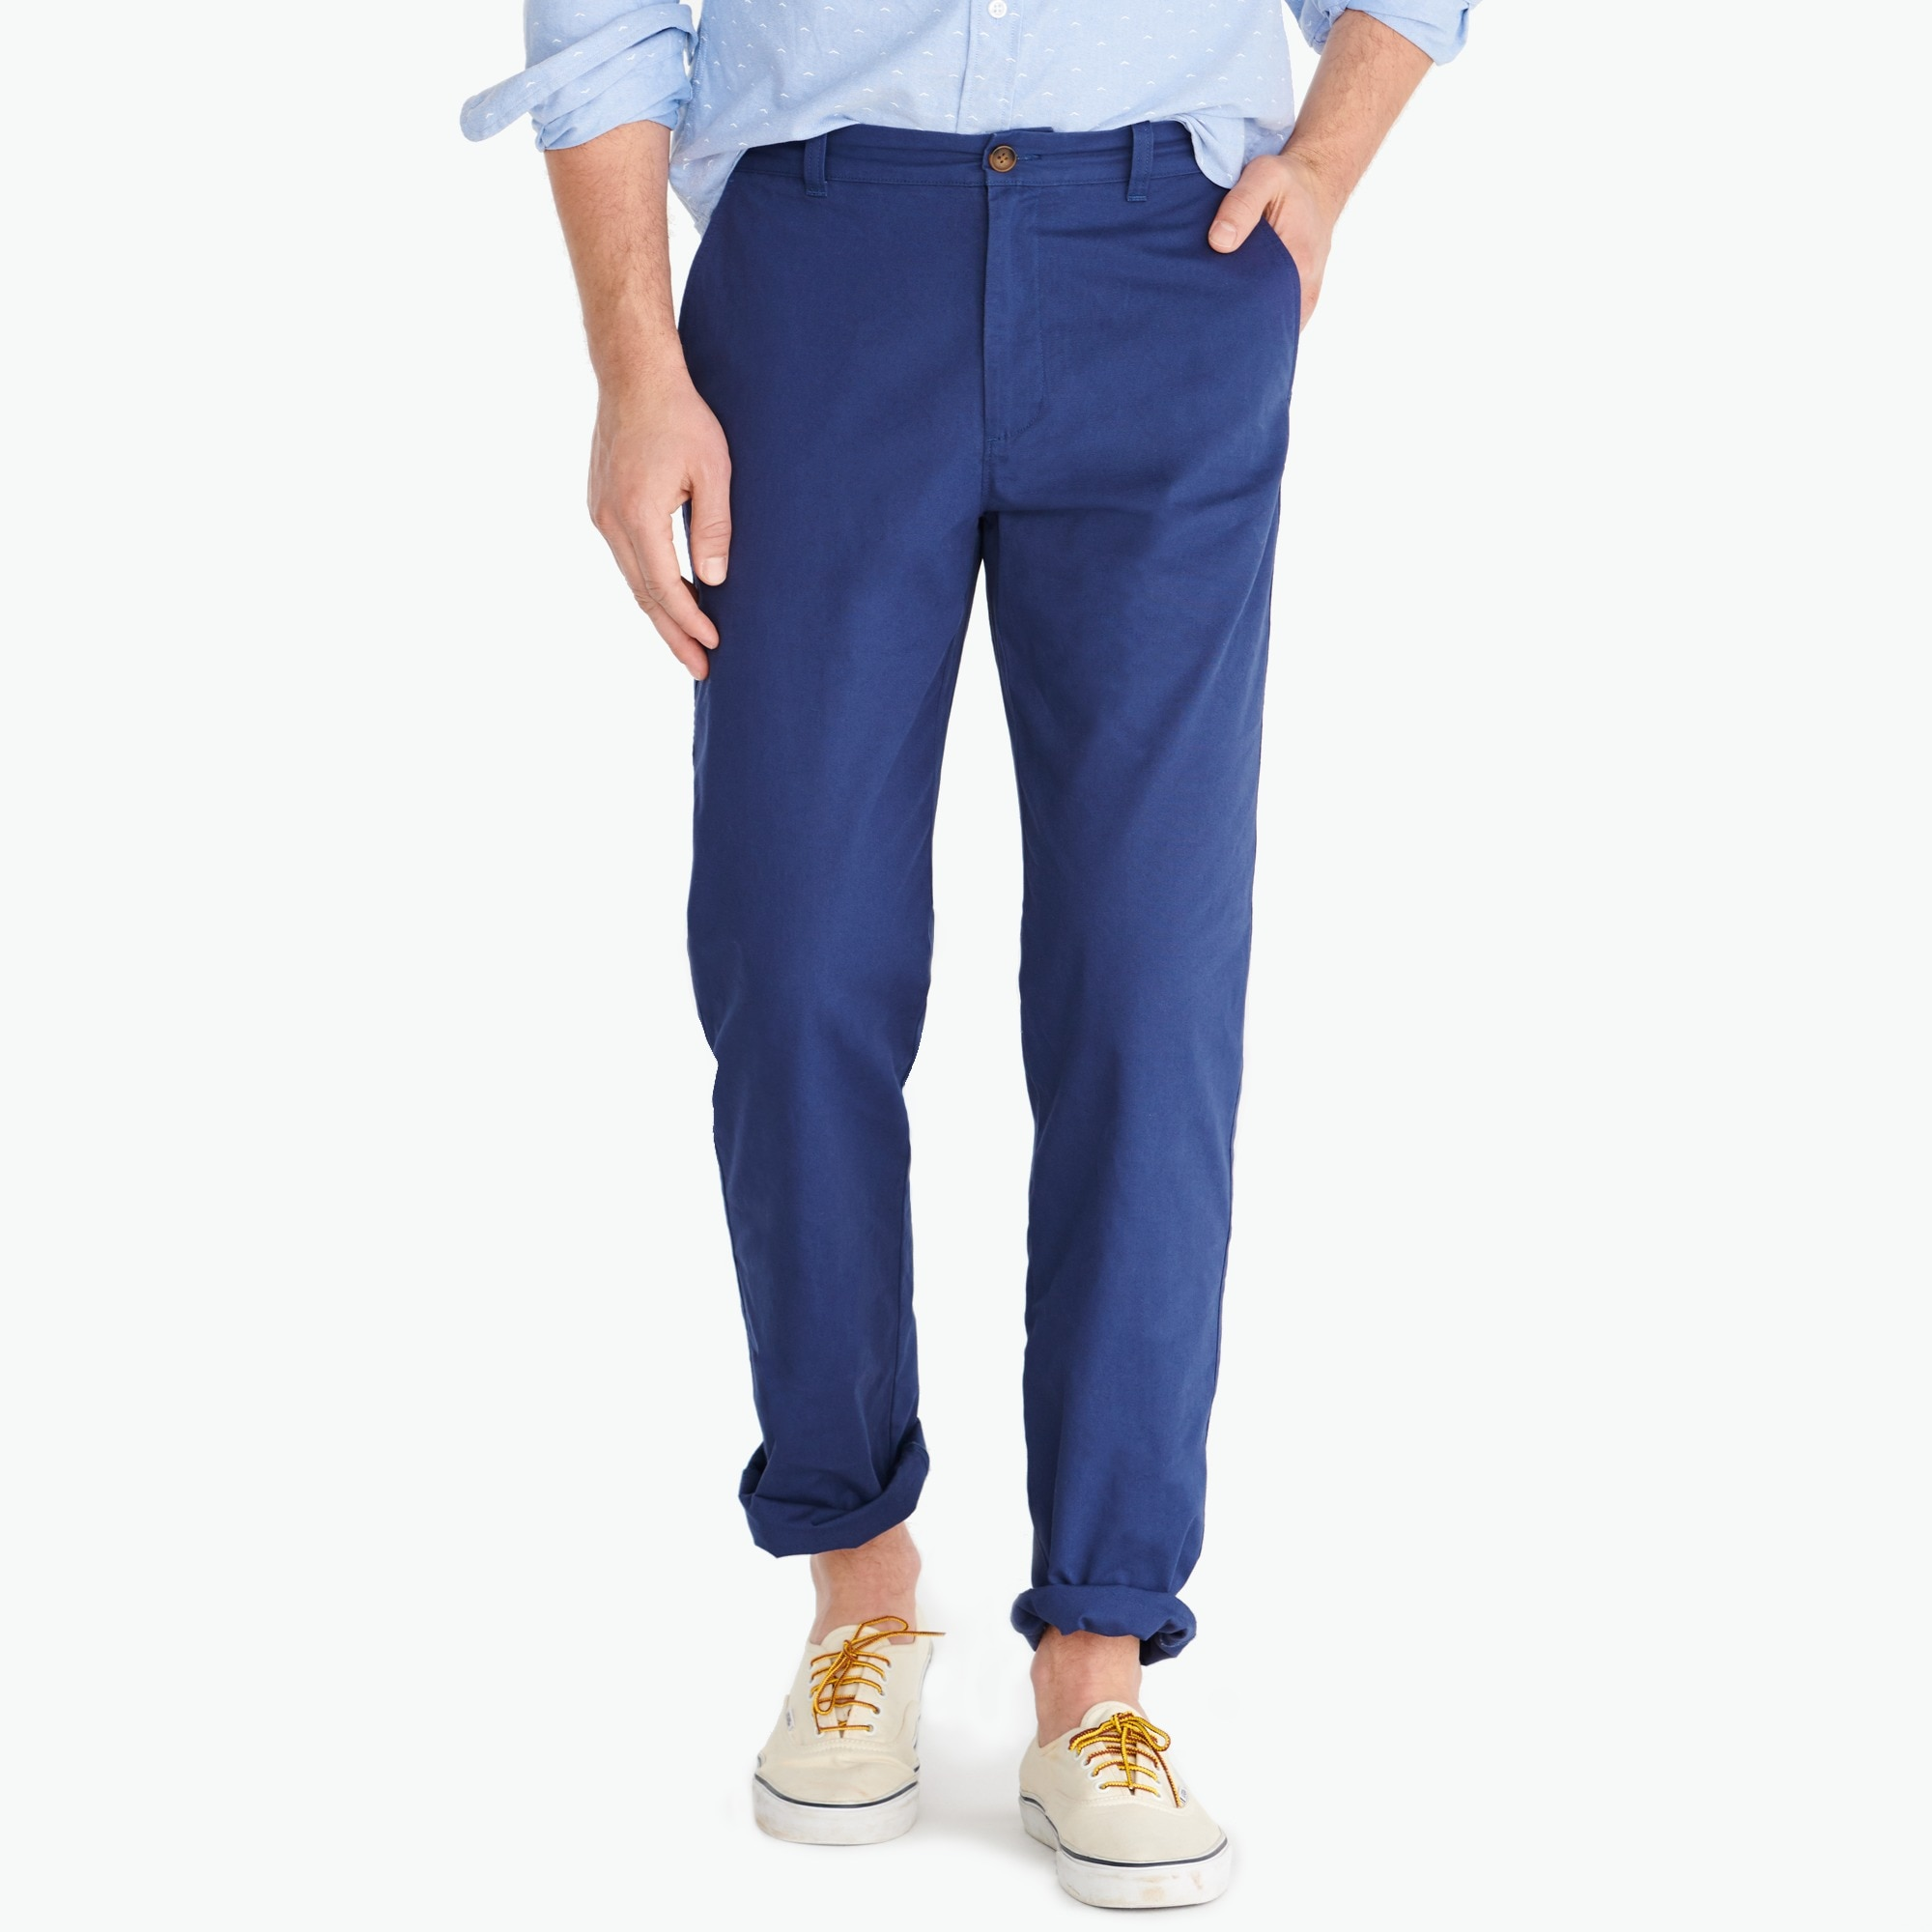 Bleecker athletic-fit lightweight chino